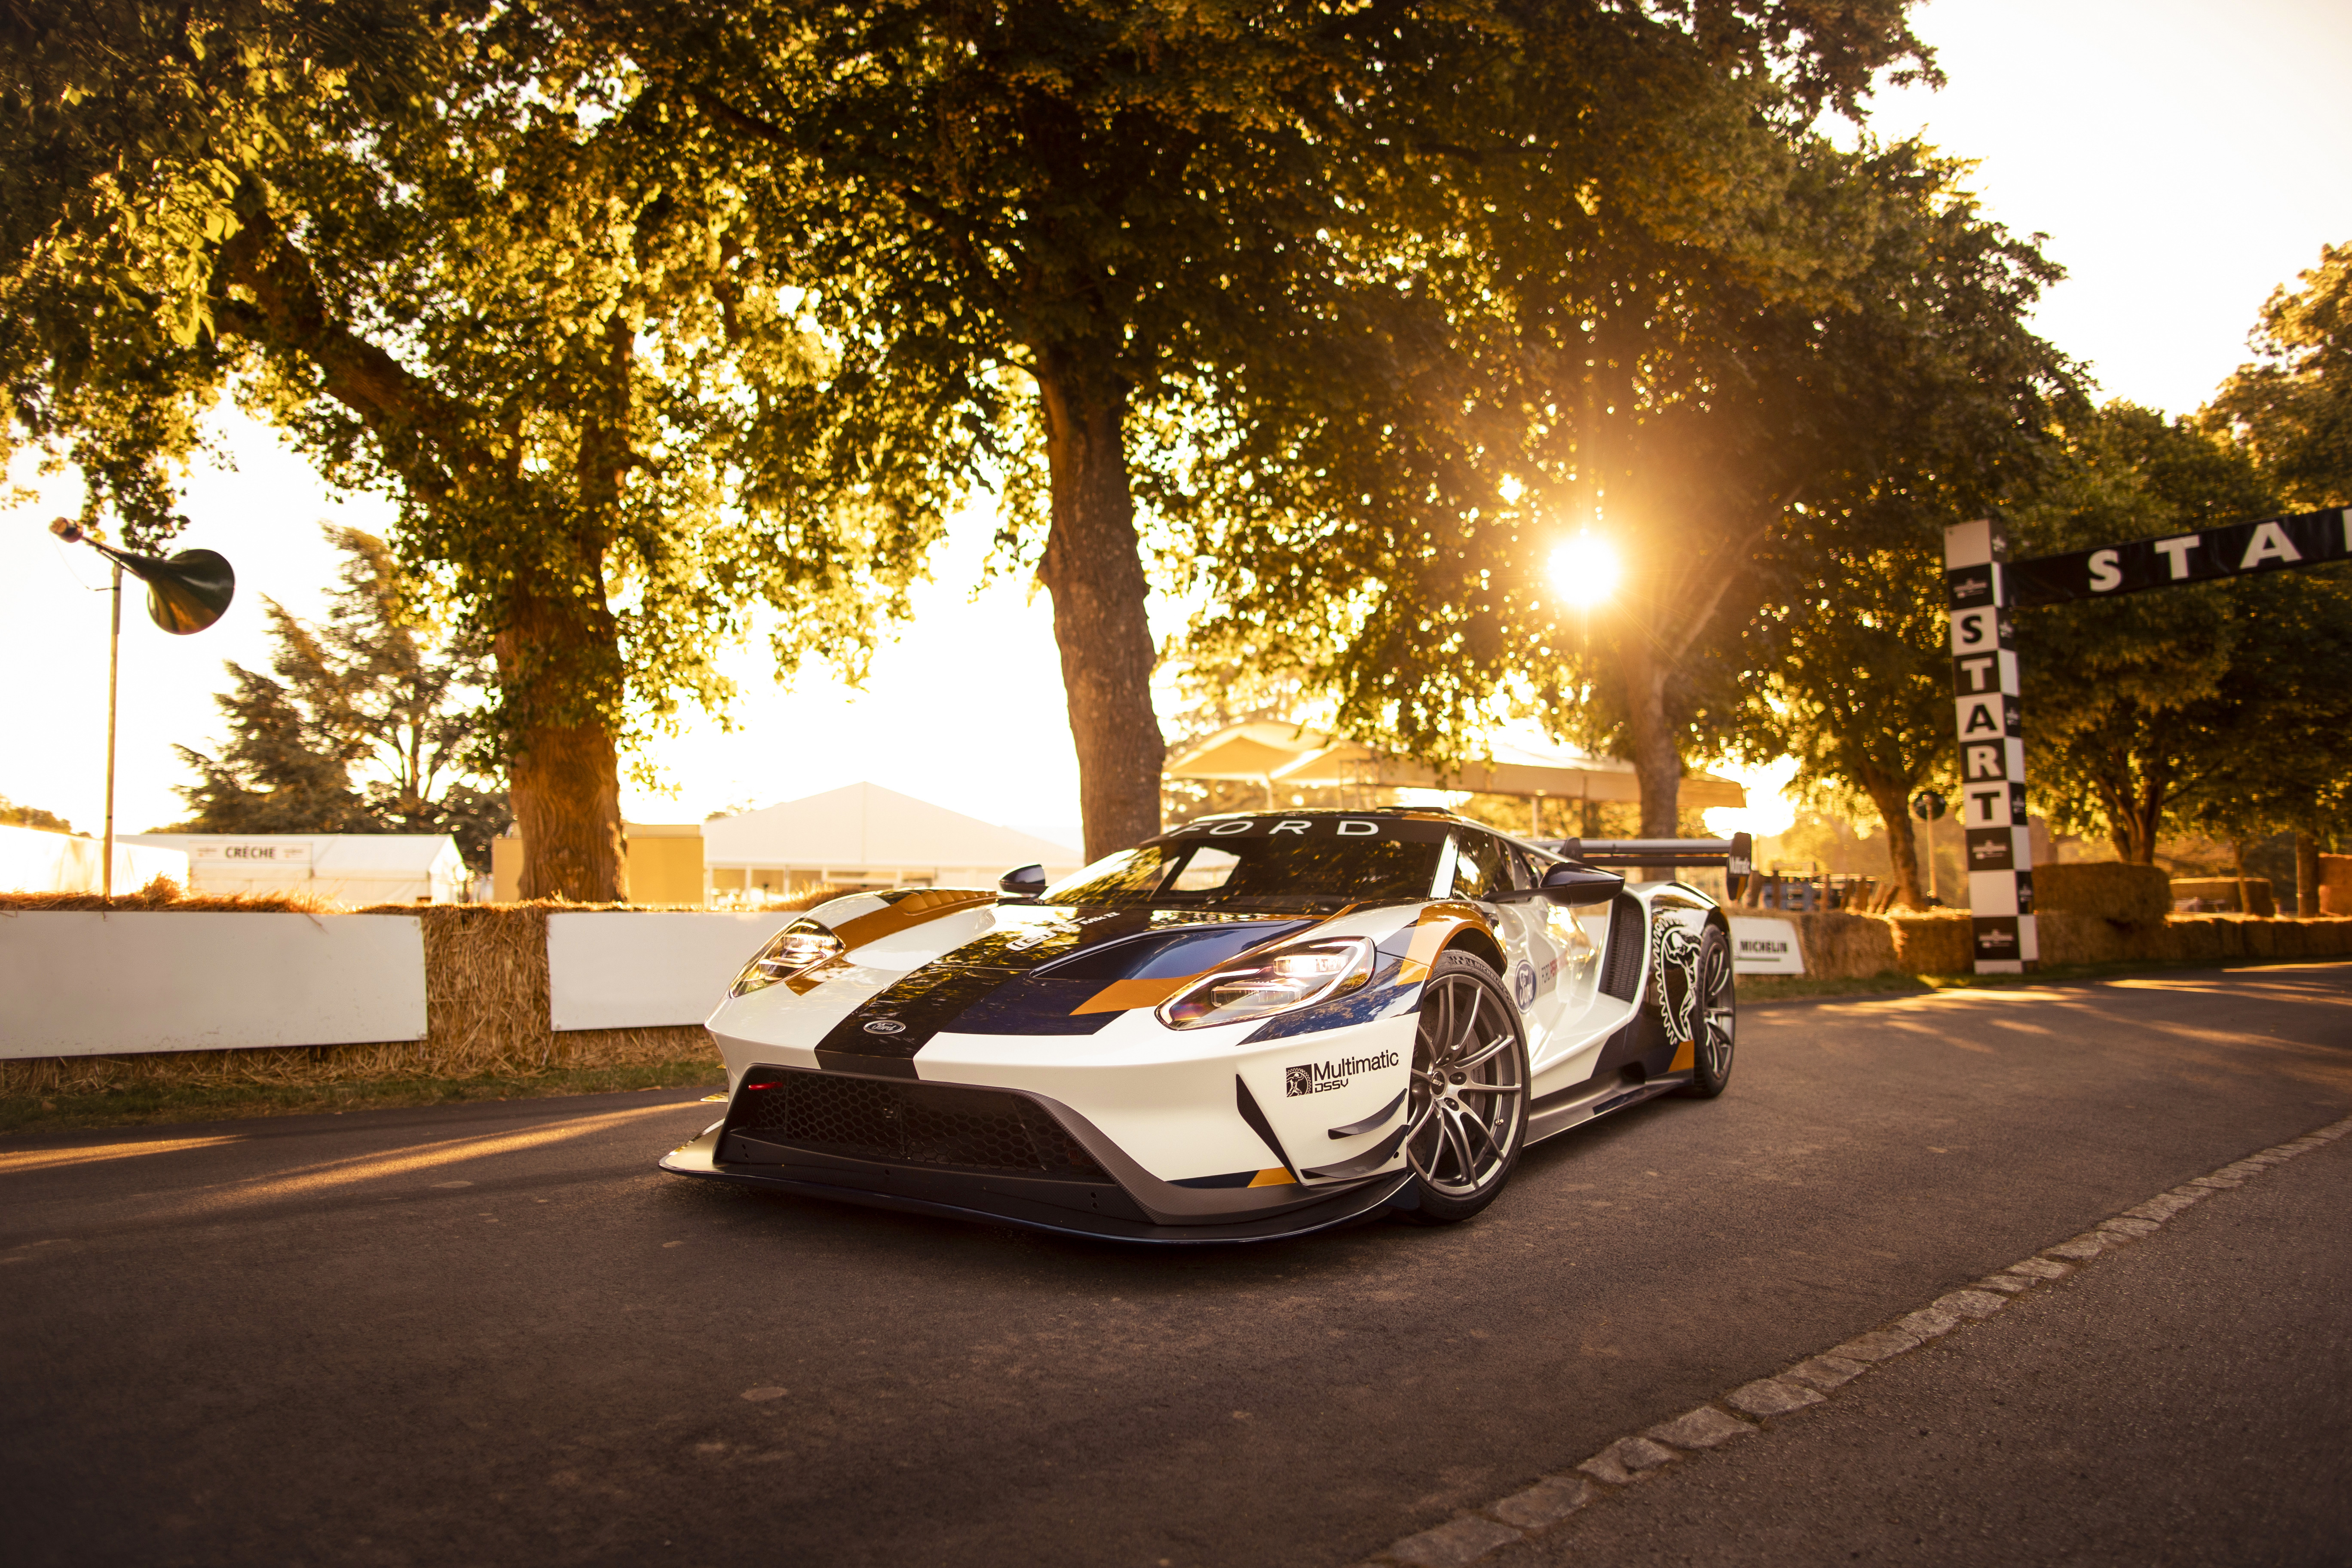 Ford GT MKII. Goodwood, England 2nd July 2019 Photo: Drew Gibson